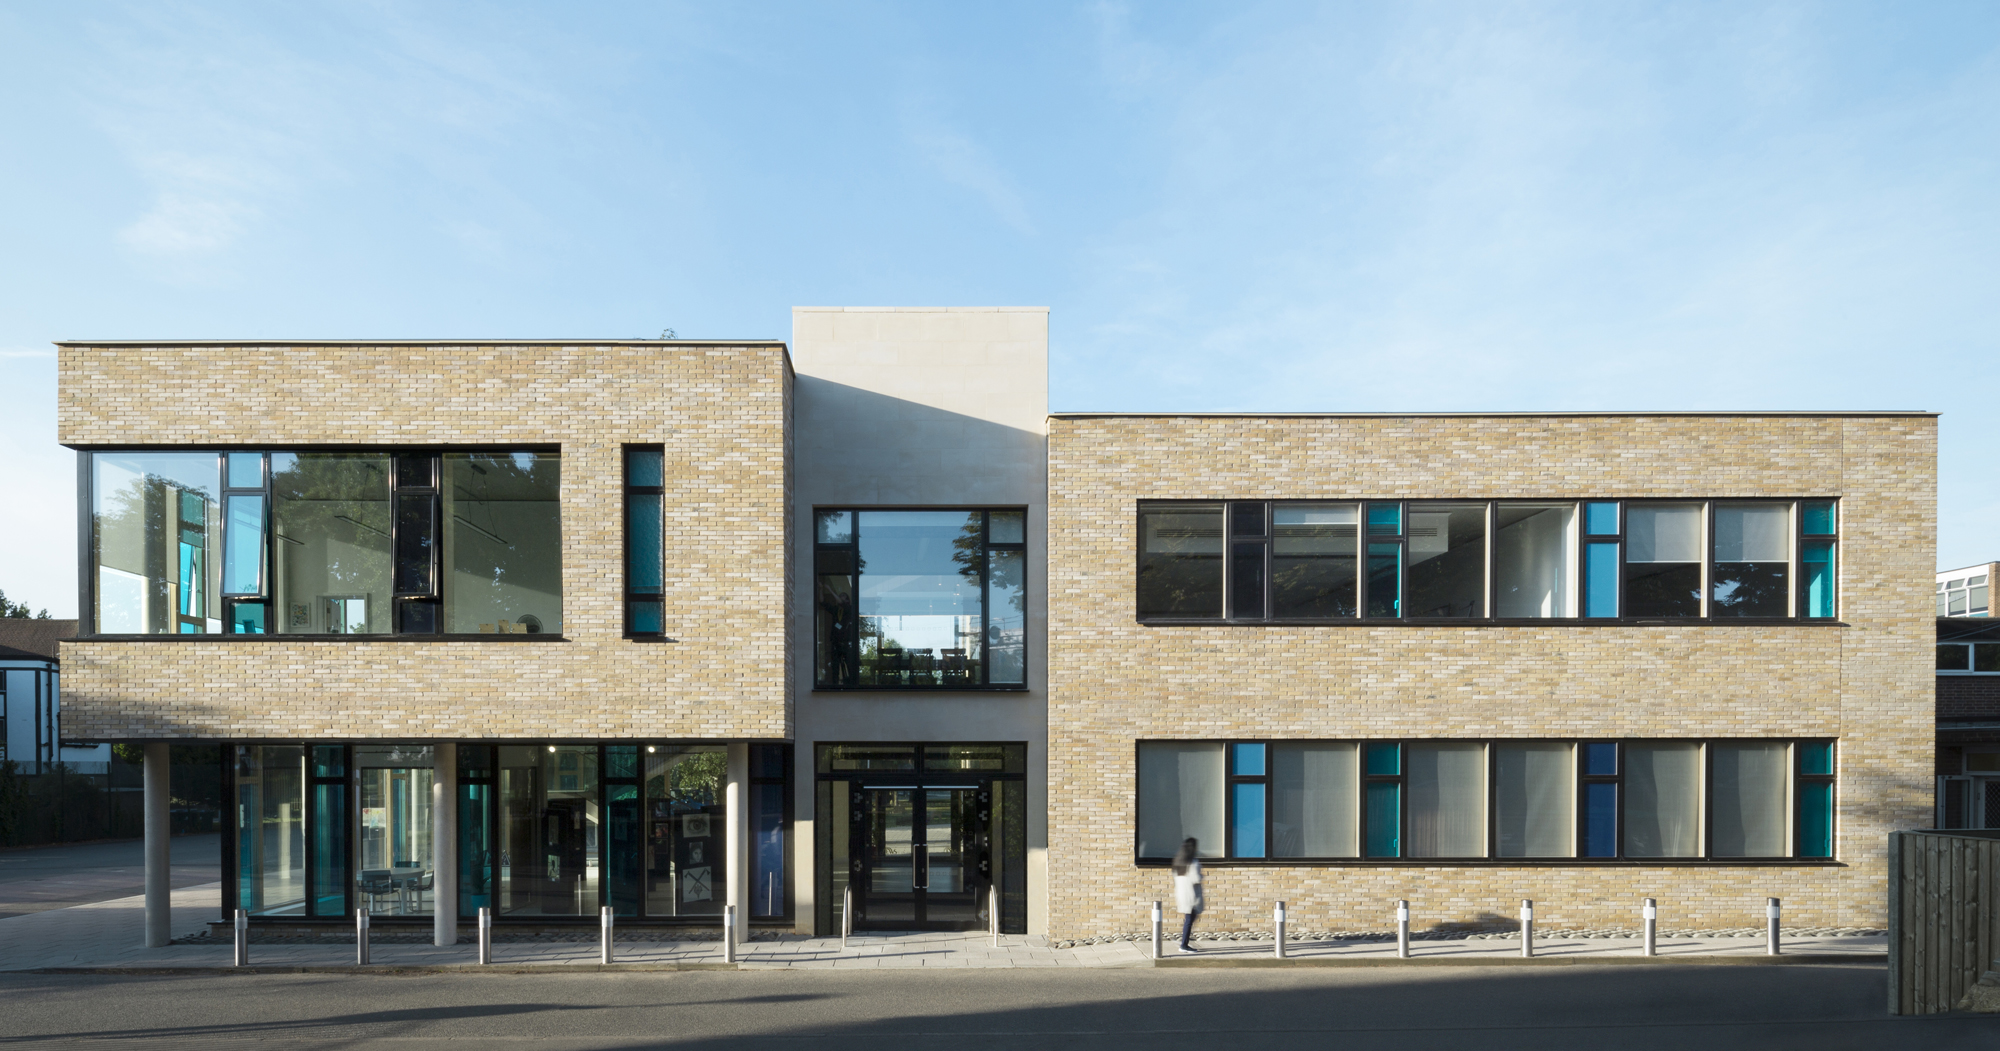 A design-led approach to creating a new school entrance building